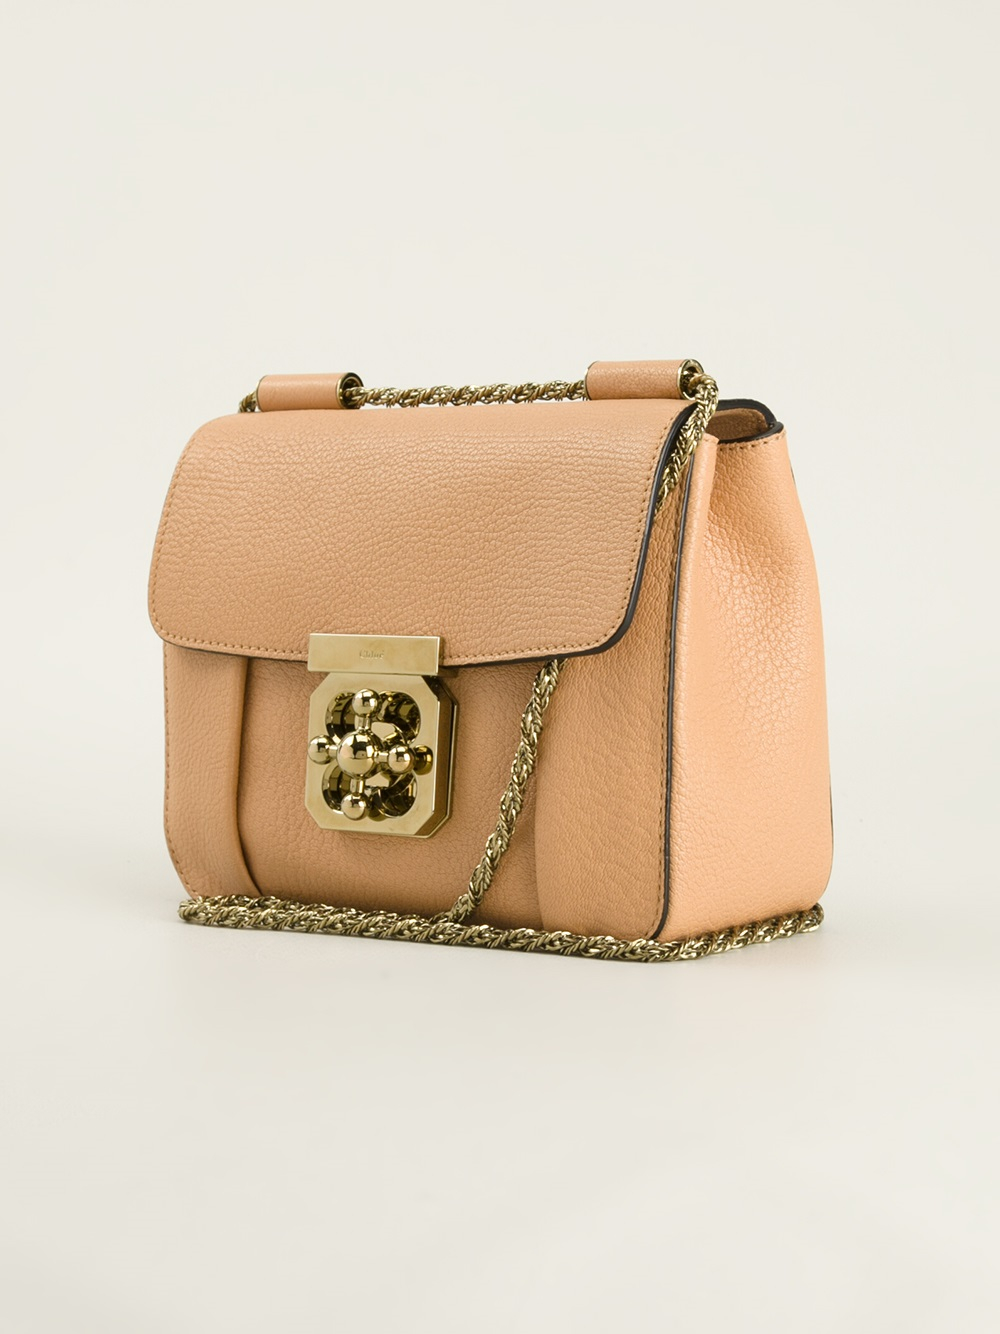 Chlo�� Elsie Cross Body Bag in Beige (nude \u0026amp; neutrals) | Lyst